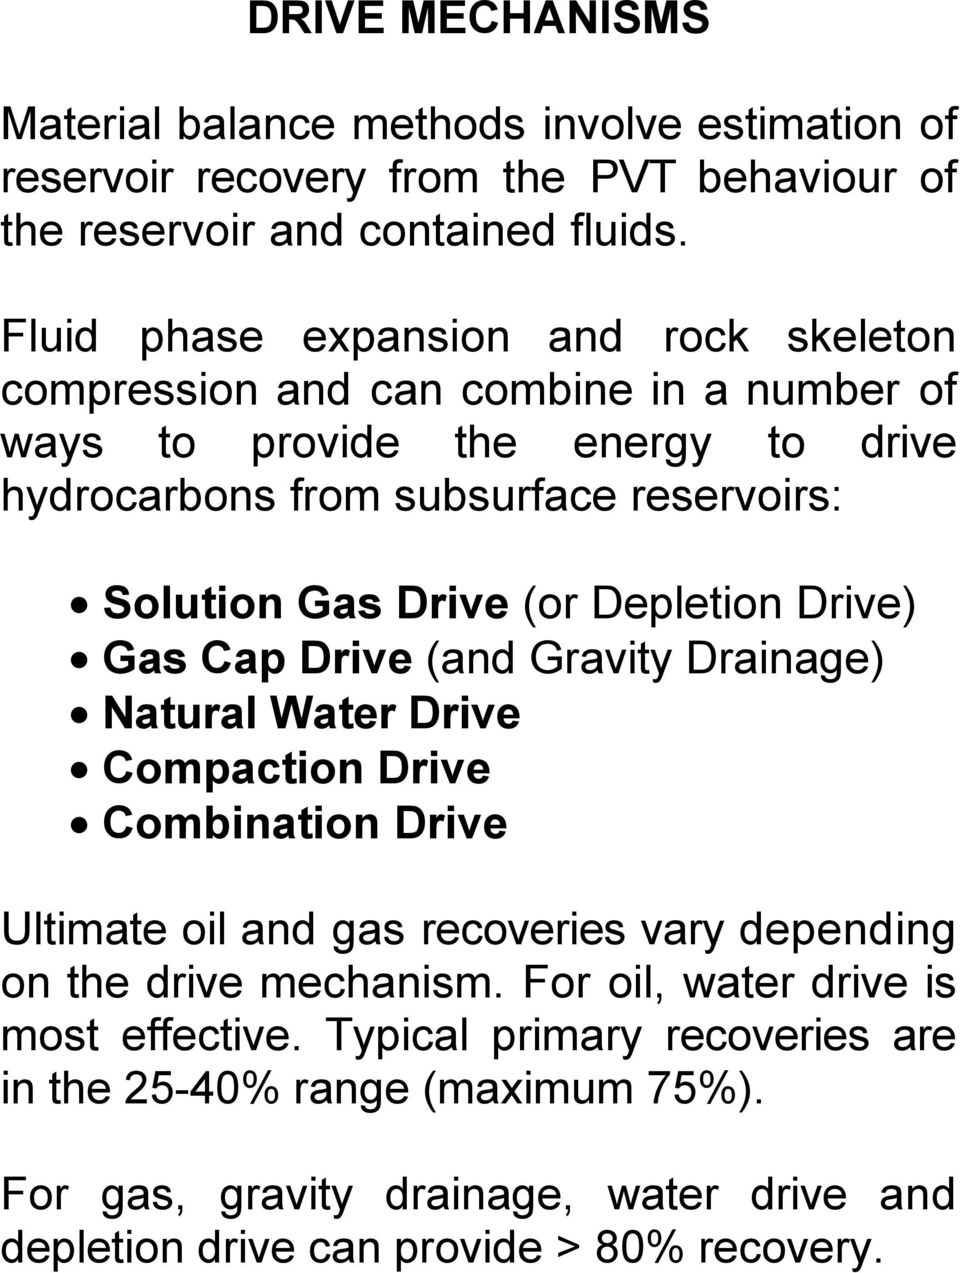 Drive (or Depletion Drive) Gas Cap Drive (and Gravity Drainage) Natural Water Drive Compaction Drive Combination Drive Ultimate oil and gas recoveries vary depending on the